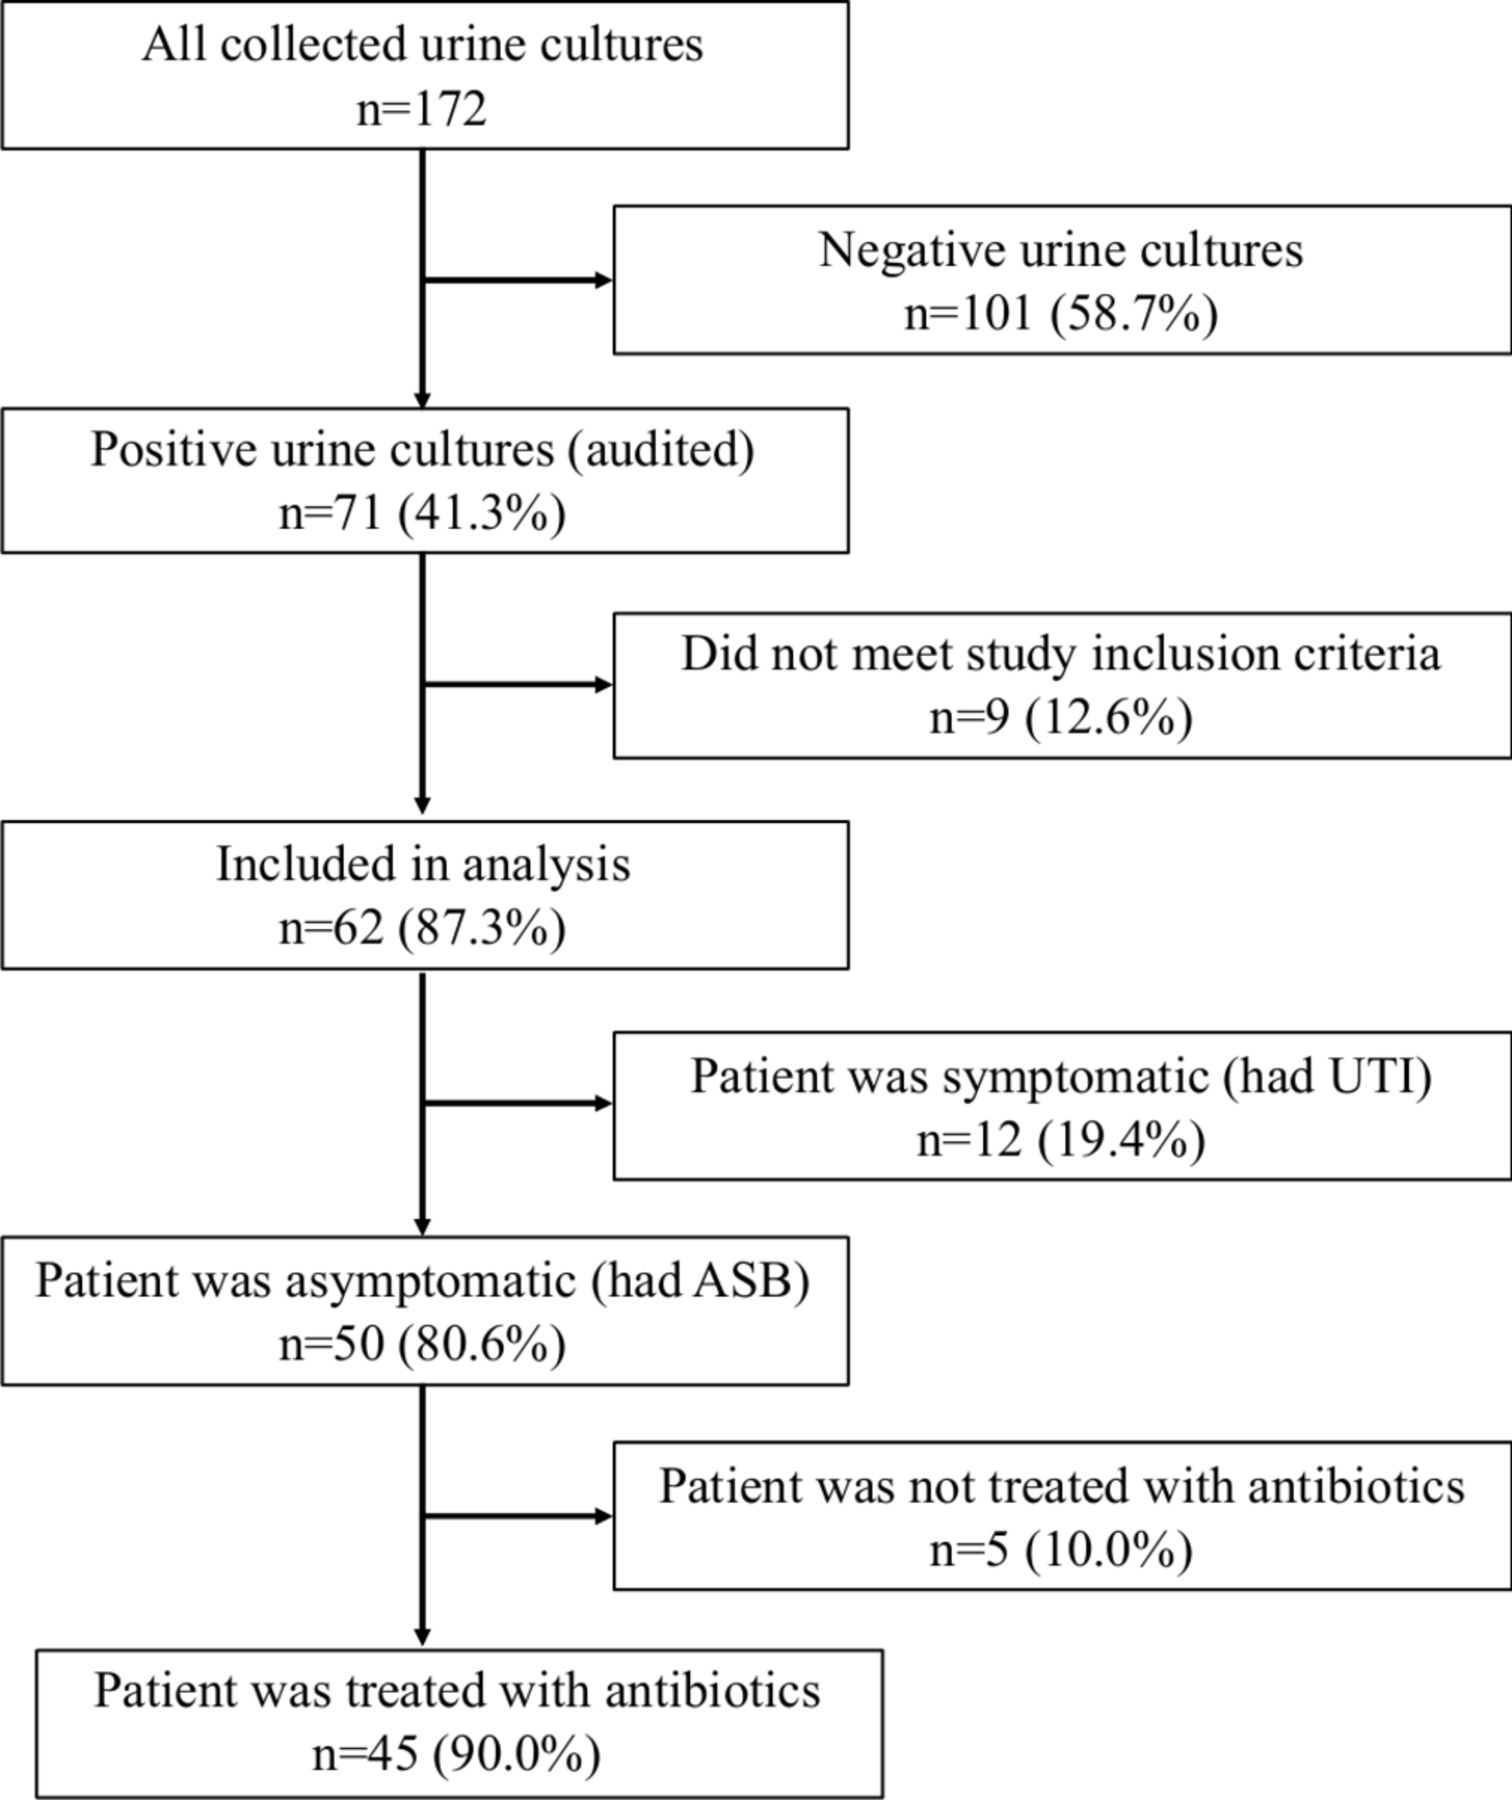 Educational Intervention To Reduce Treatment Of Asymptomatic